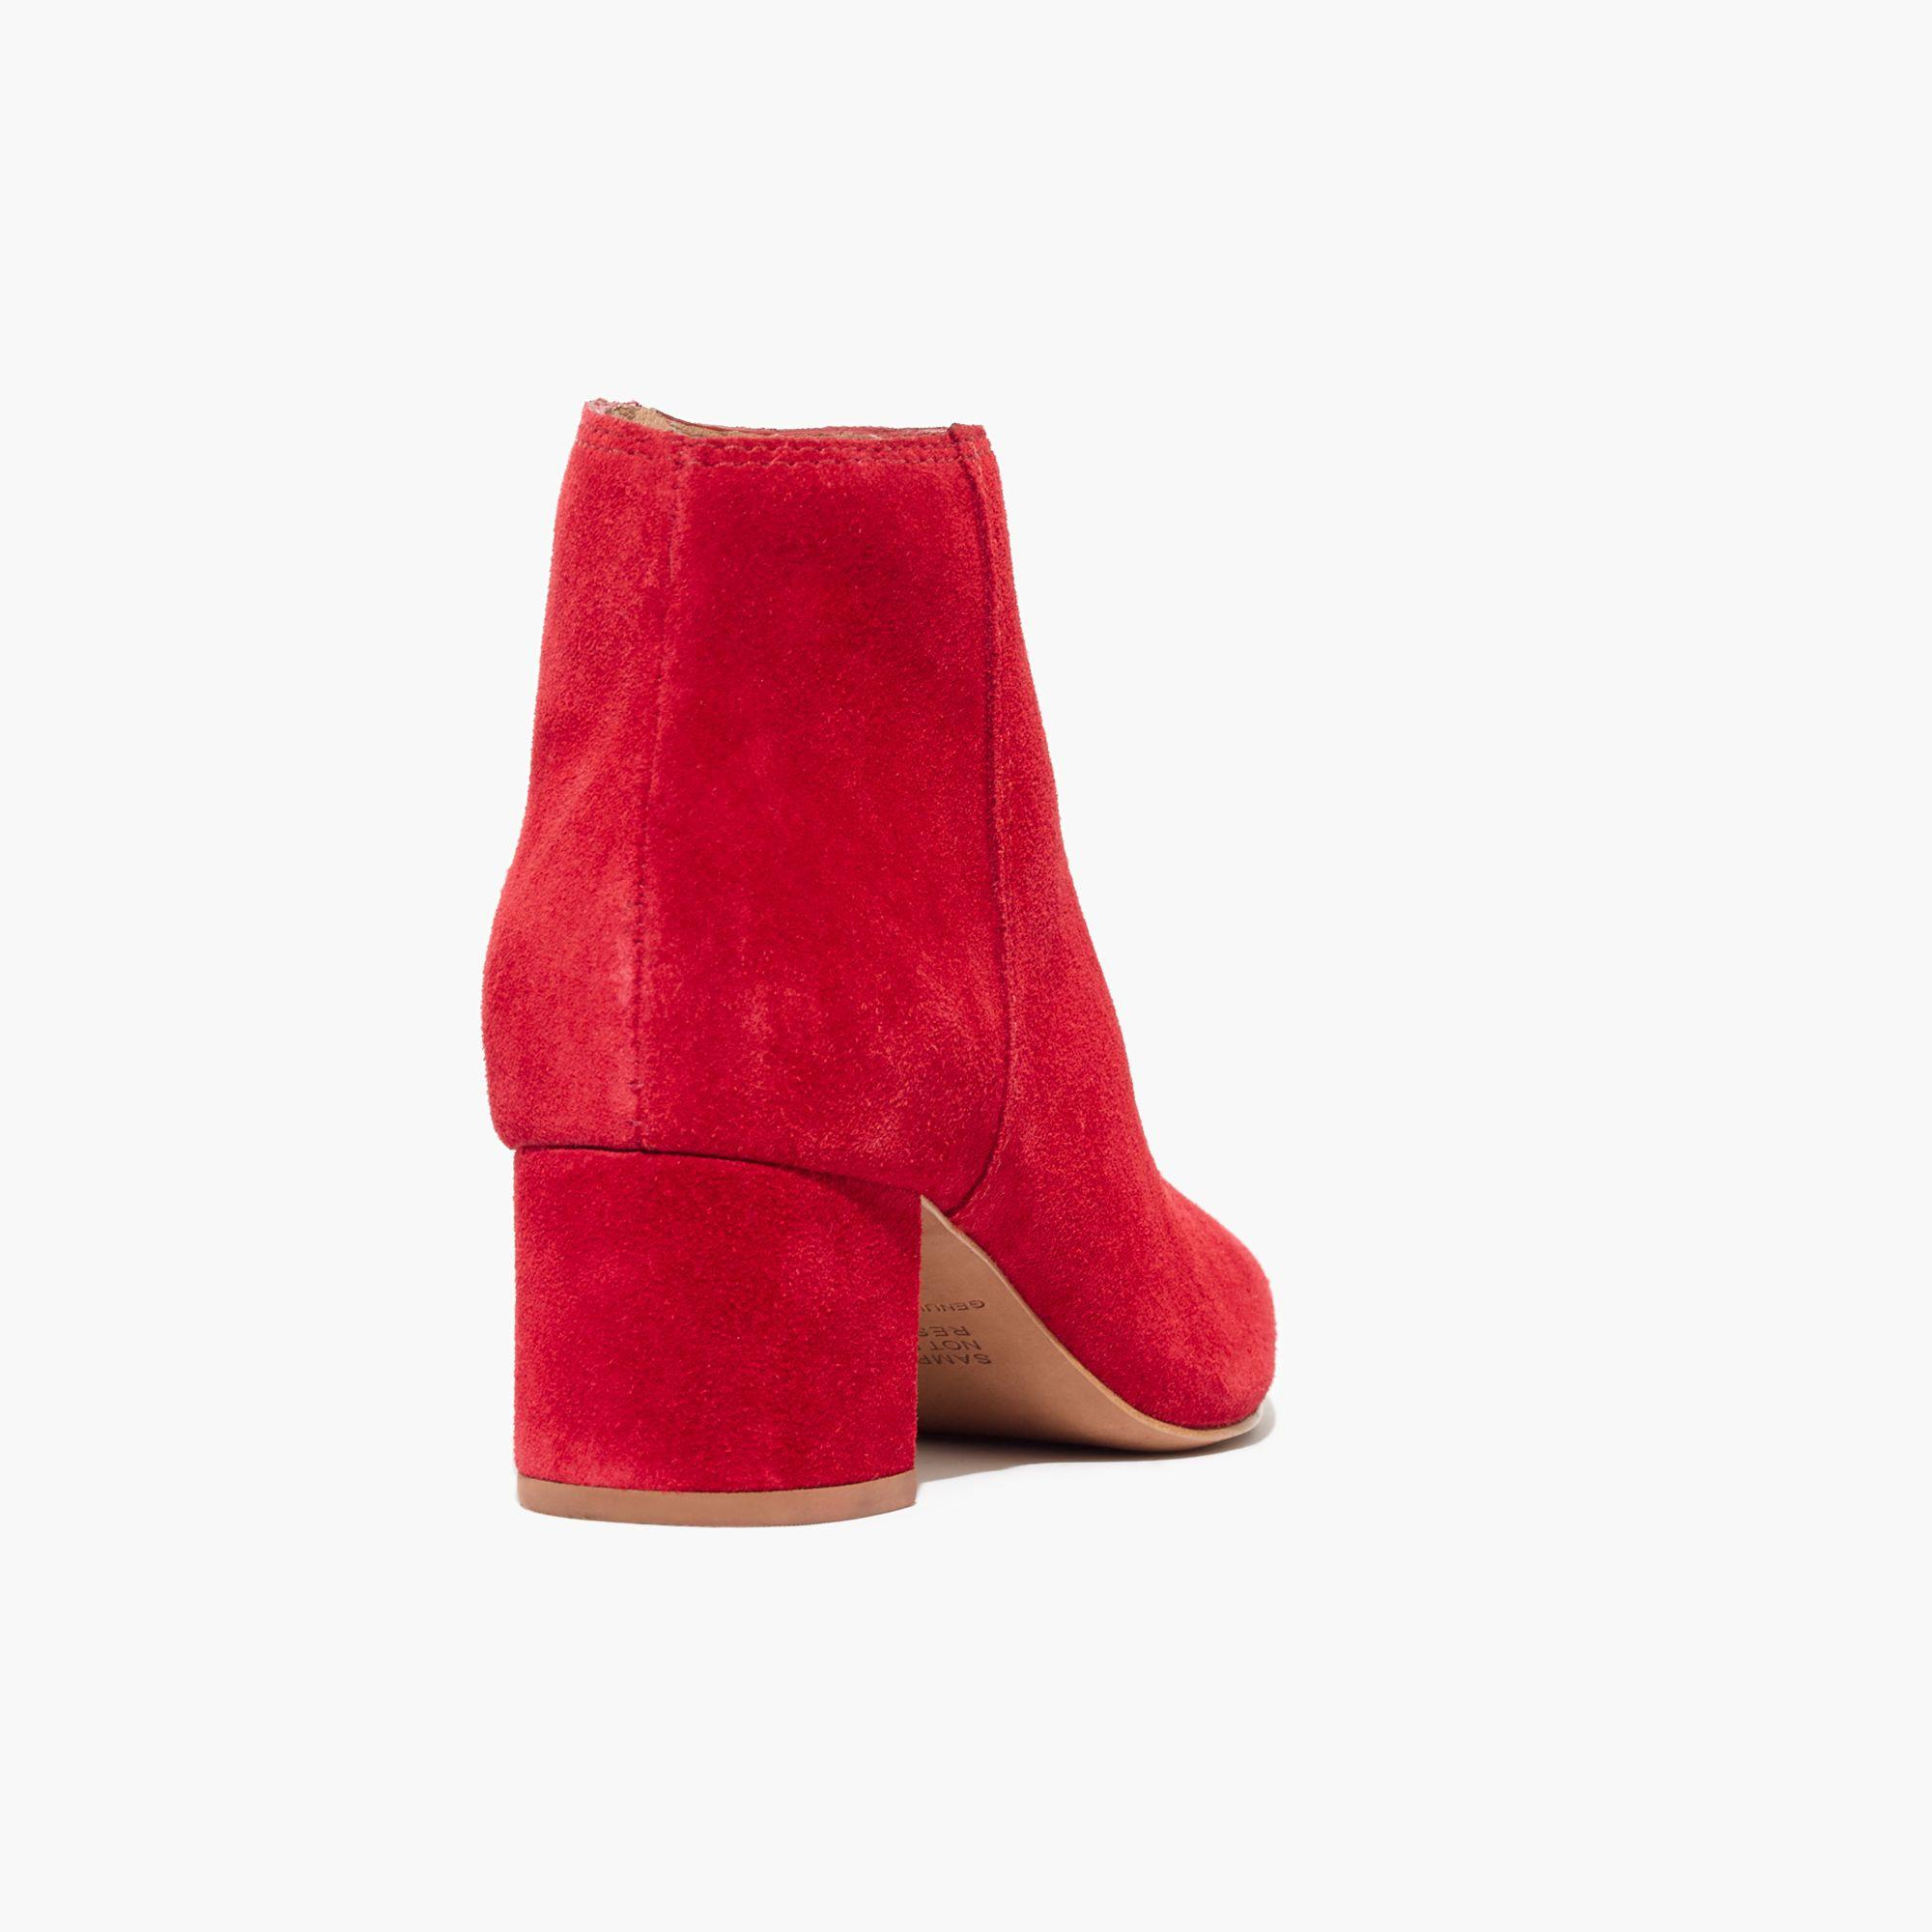 Madewell The Lucien Boot In Suede in Red